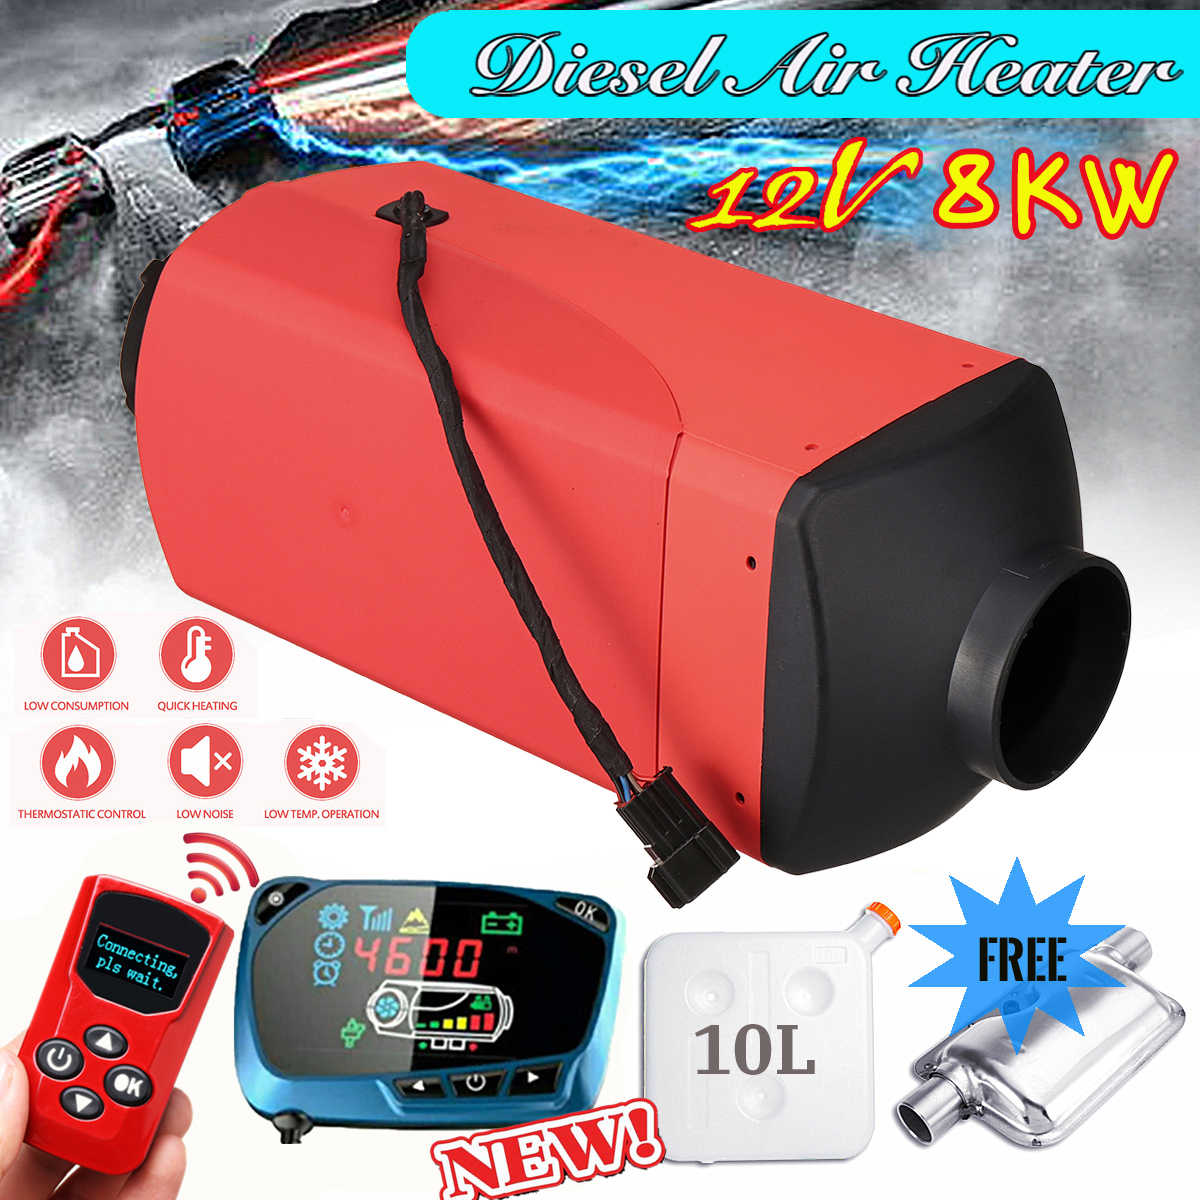 8KW 12V//24V Diesel Air Heating Remote Control Vehicle Heater Diesel Air Heater 4 Holes LCD Monitor Thermostat Air Auxiliary Heater Car Heater